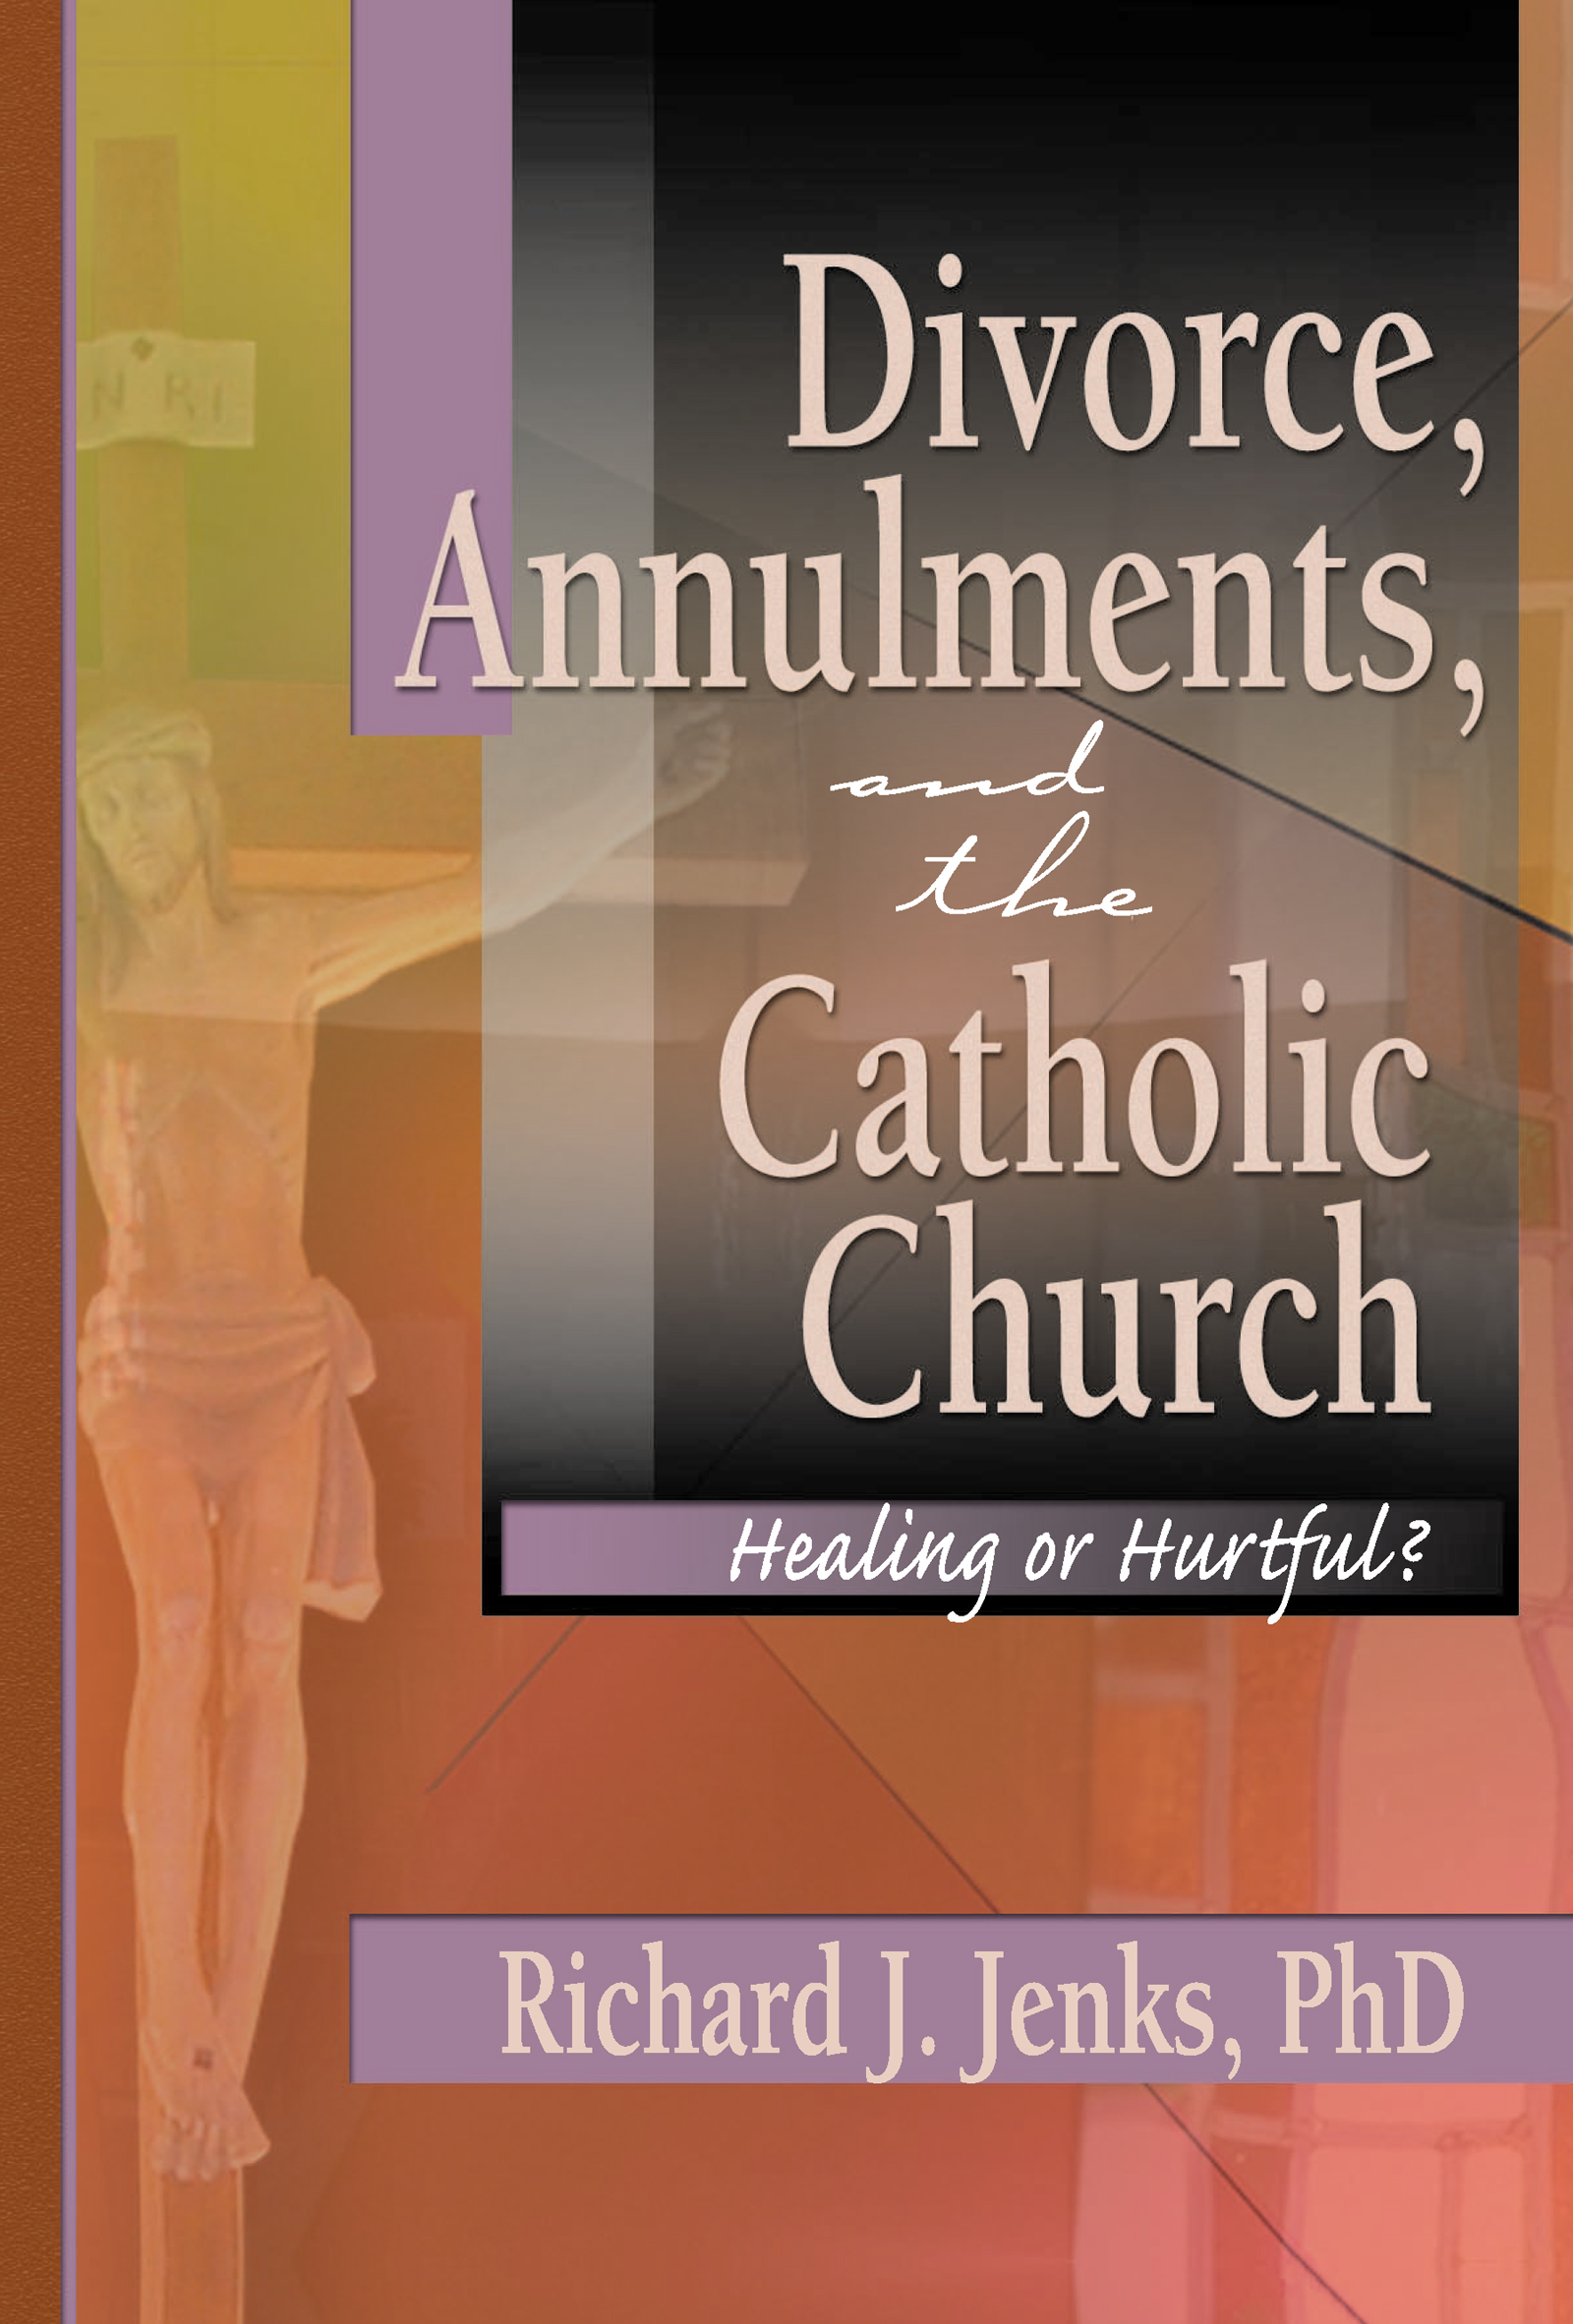 Divorce, Annulments, and the Catholic Church: Healing or Hurtful? book cover